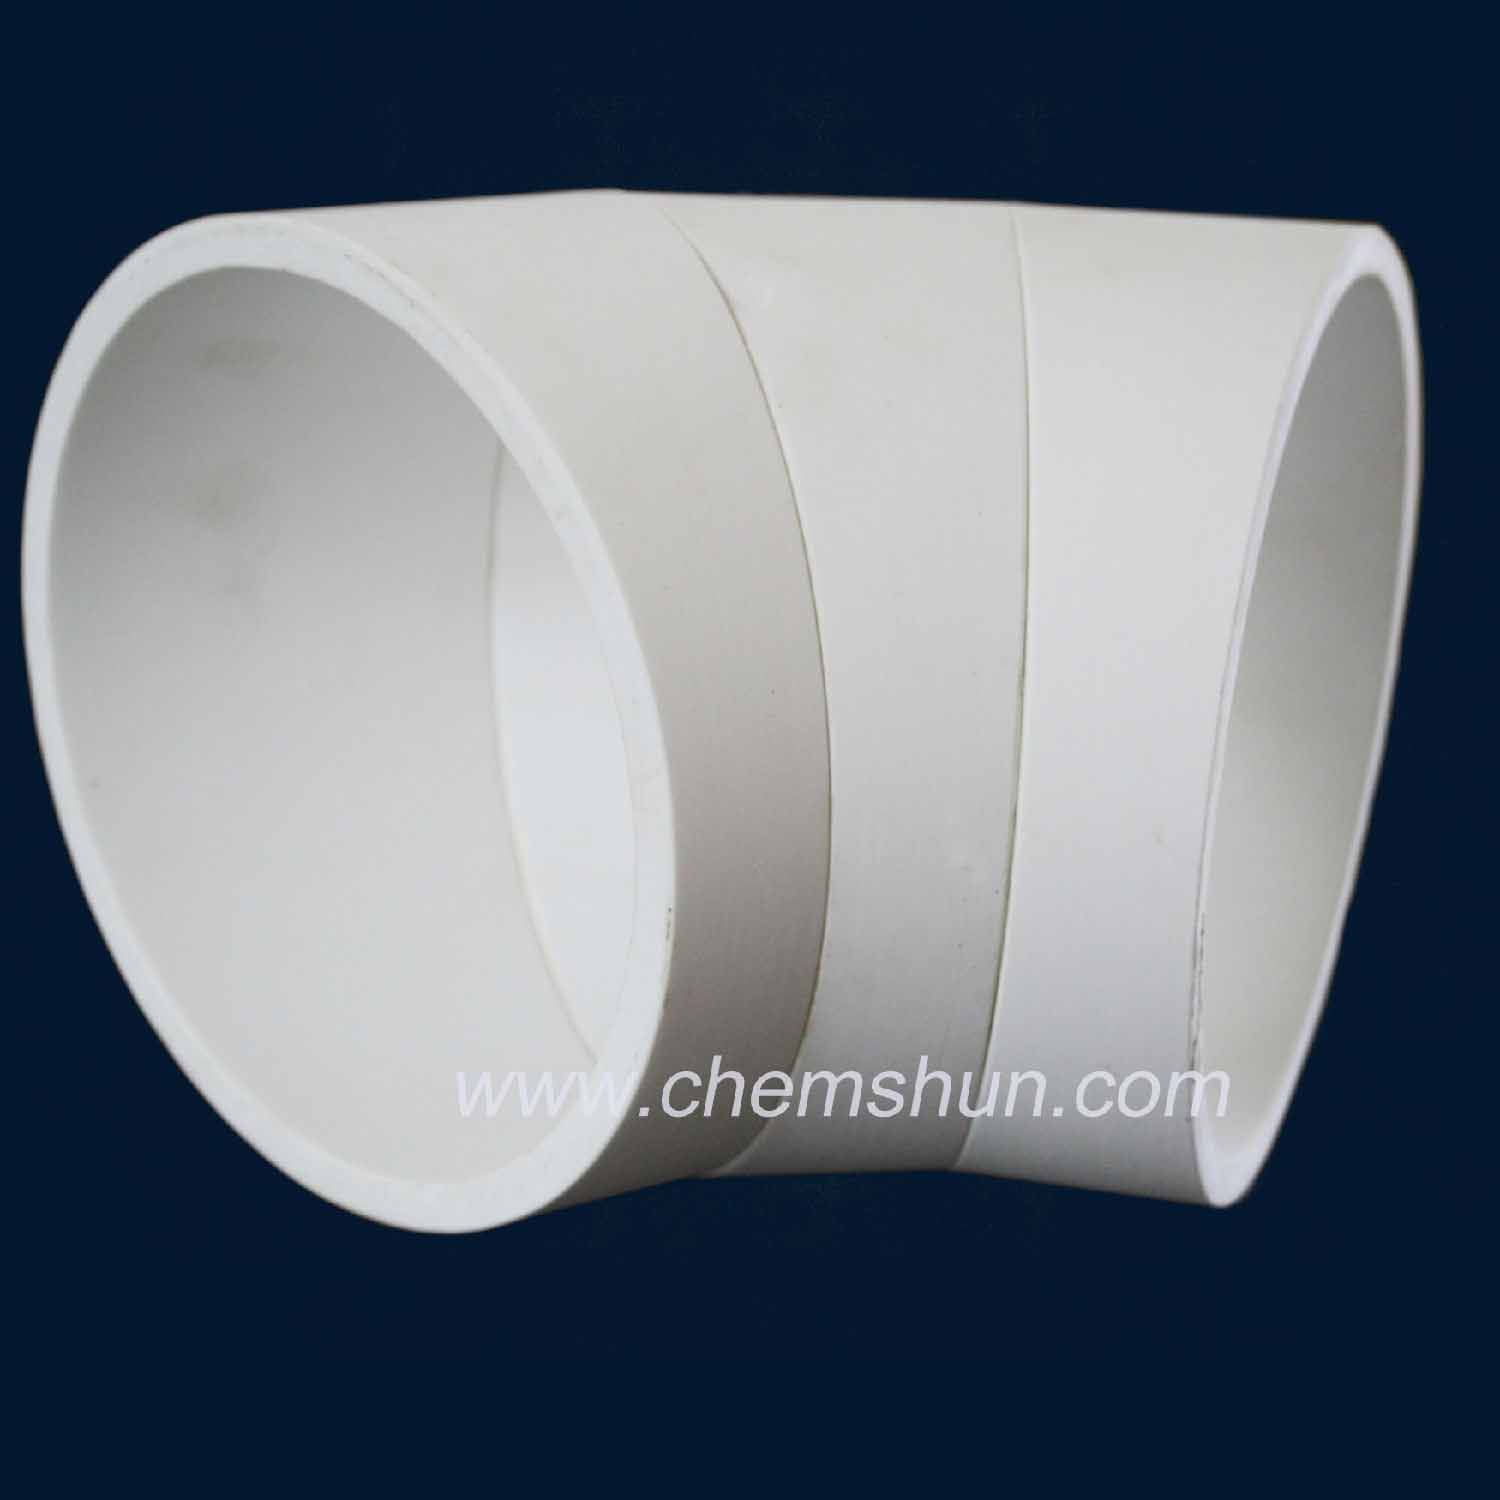 Pingxiang chemshun ceramics bend pipe liner from industrial ceramics manufacturers